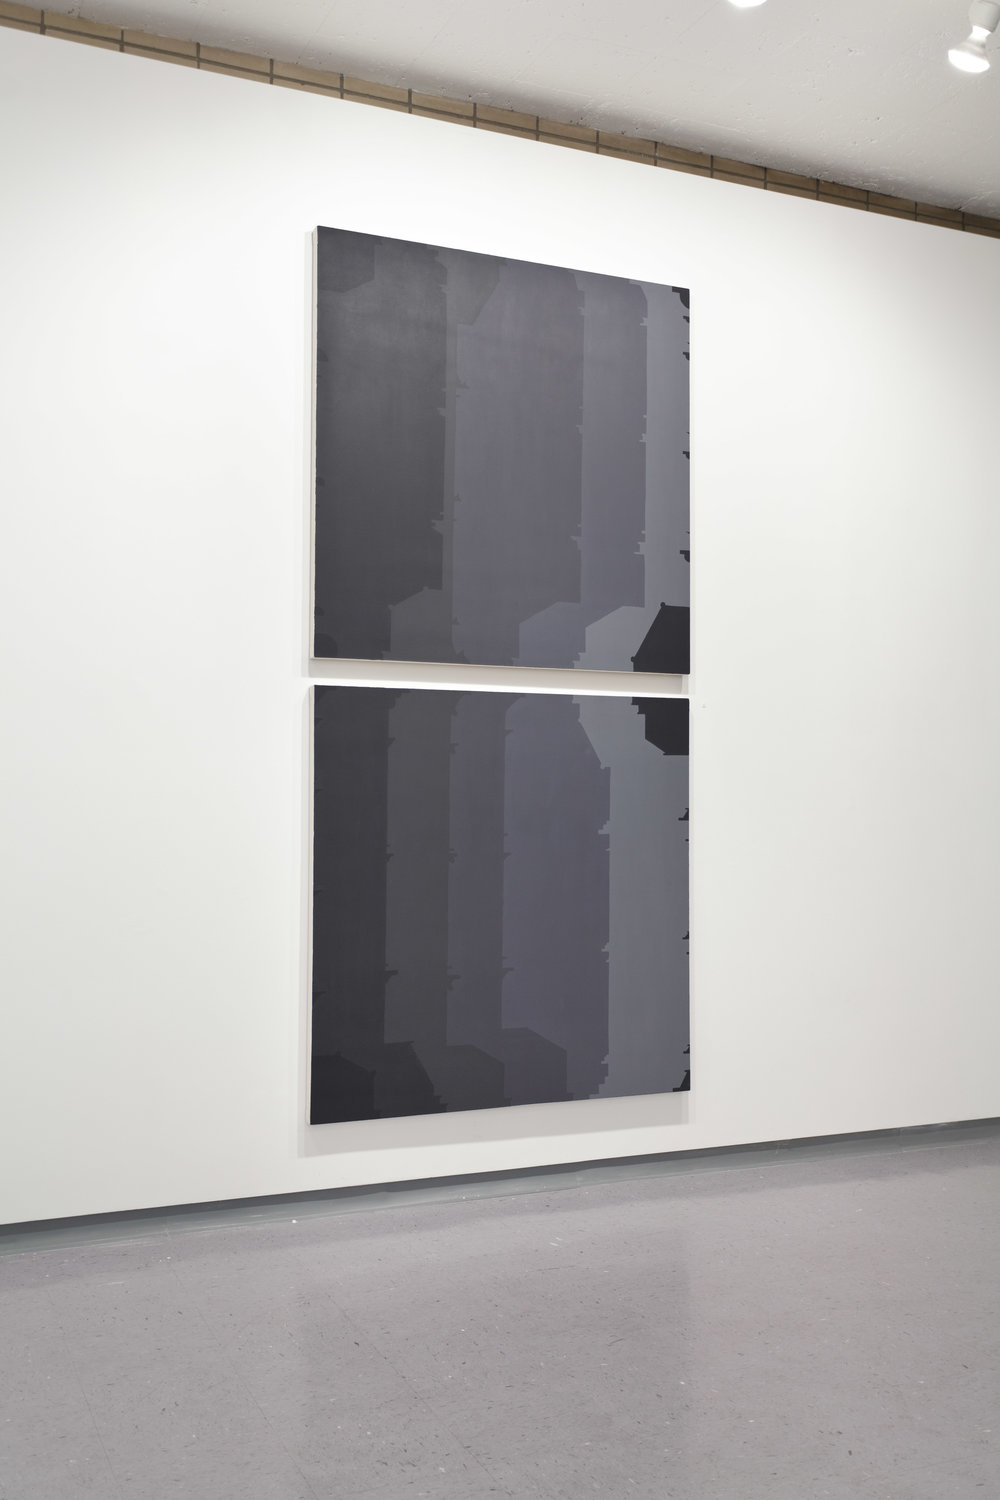 Façades 15, 2012  acrylic on canvas  99 x 48 inches (each canvas 48 x 48in.)